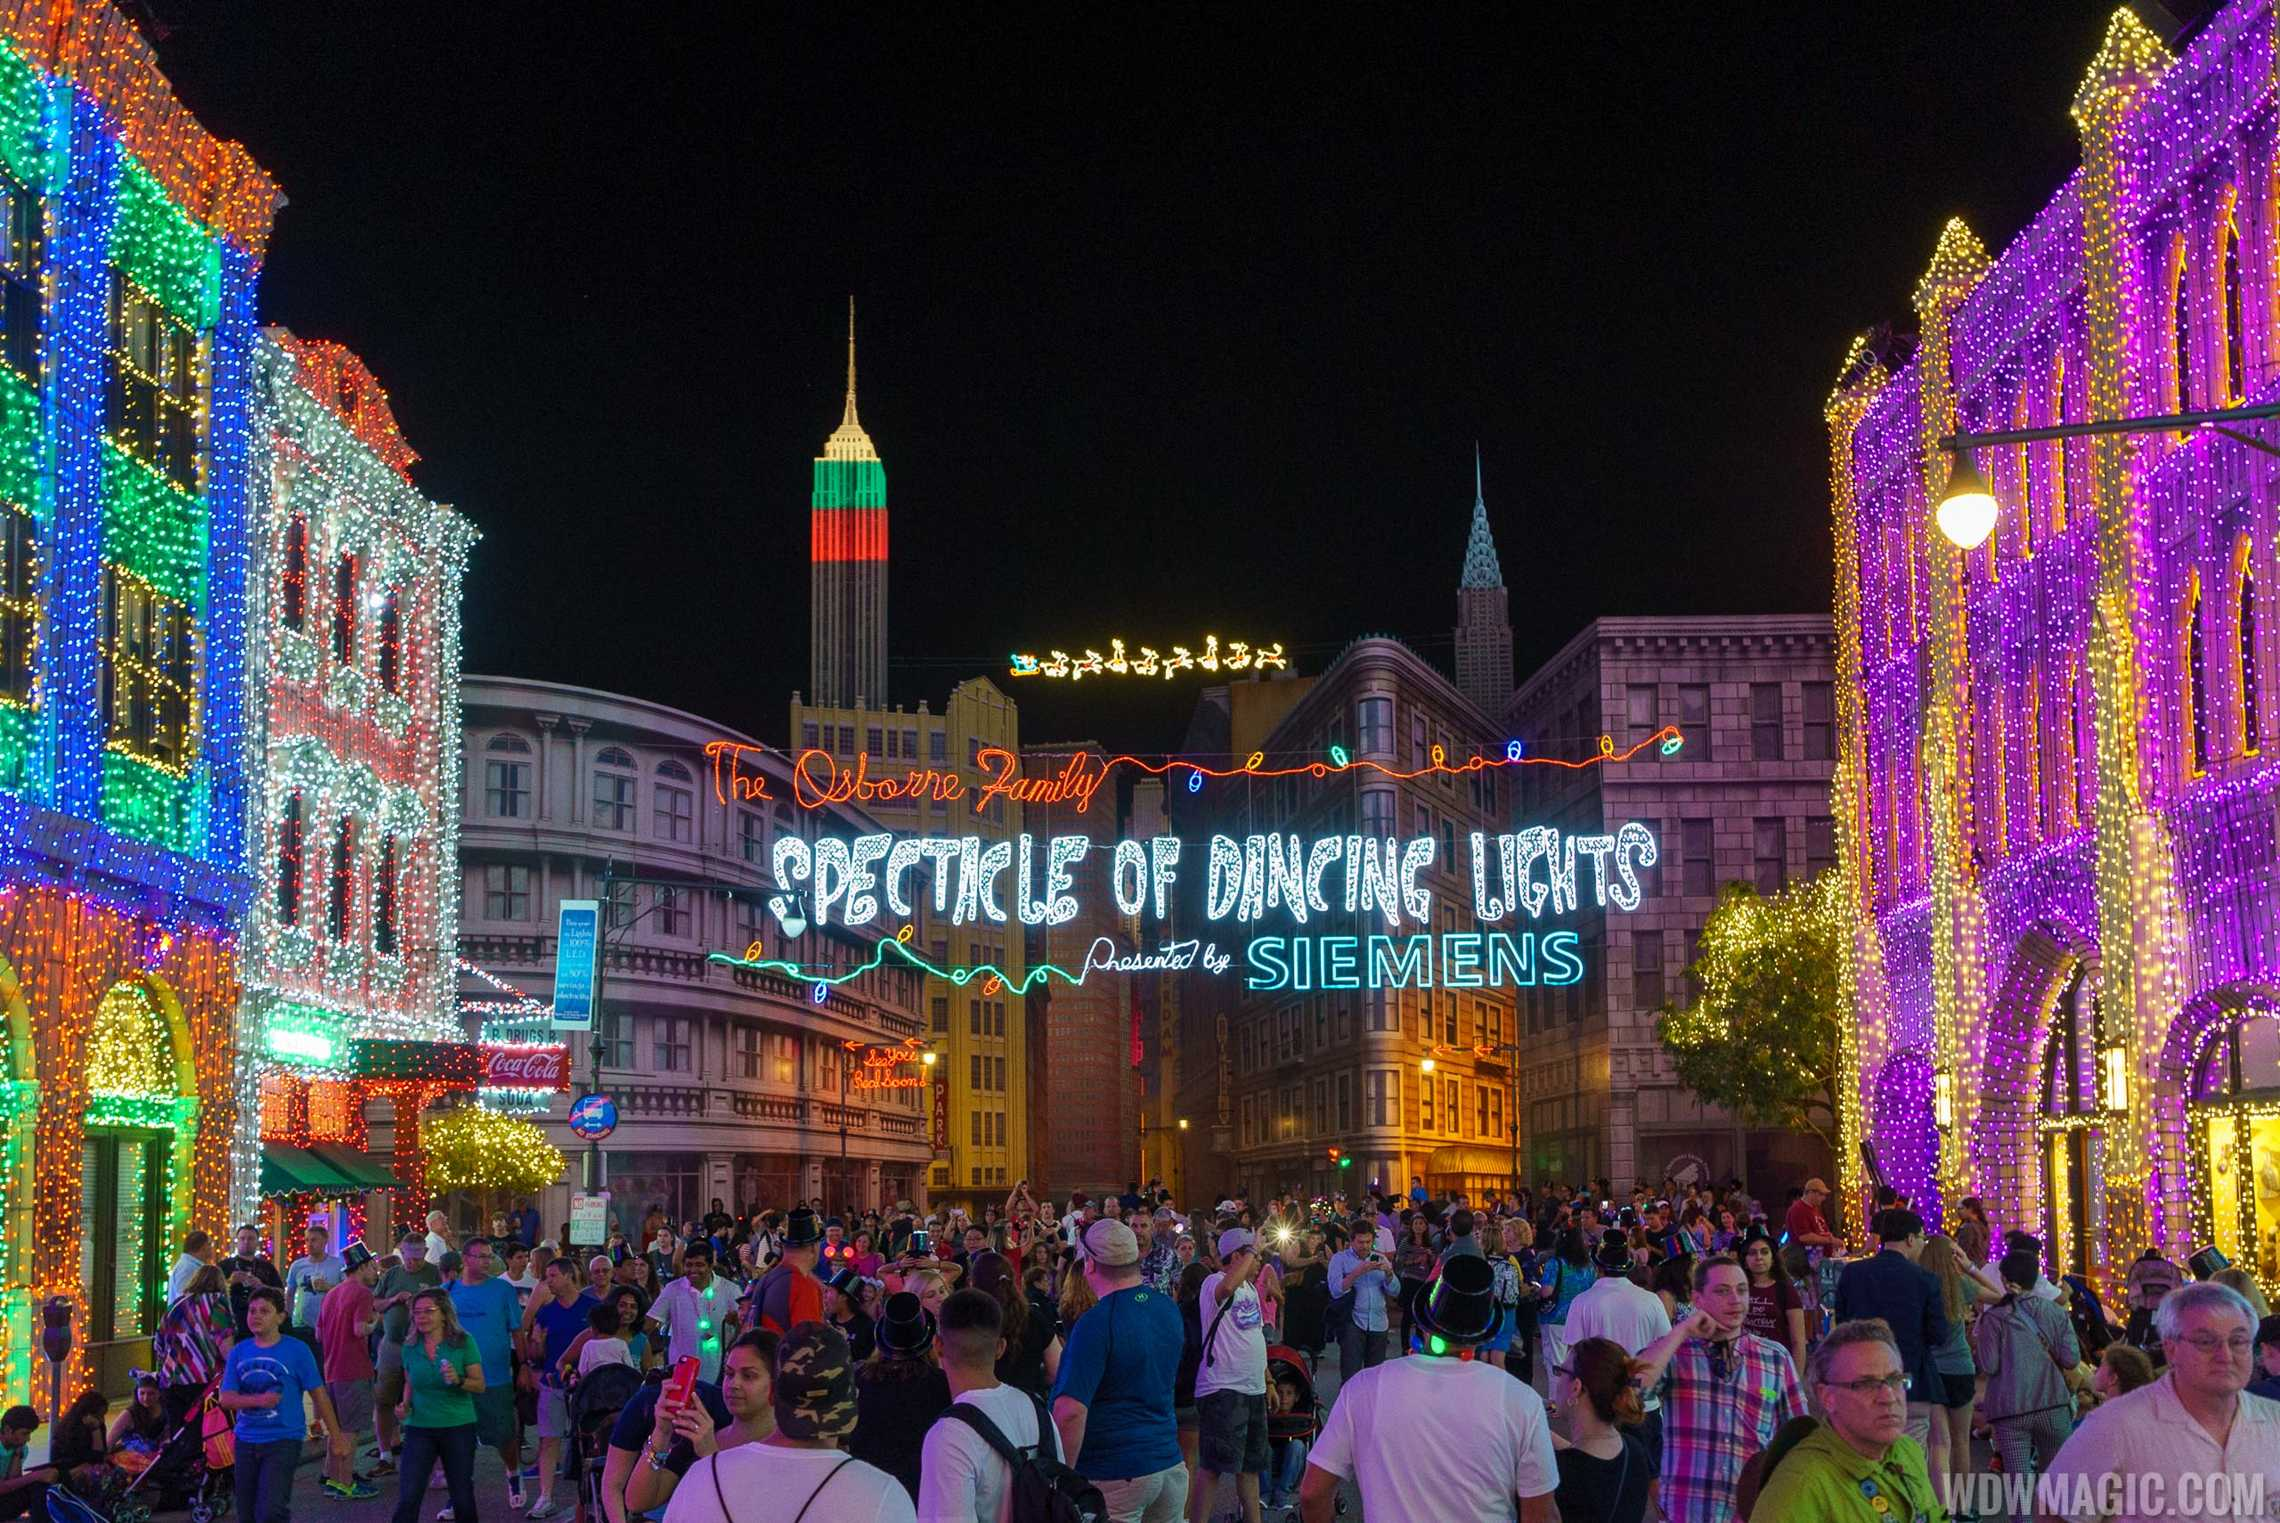 A packed Streets of American enjoys the Osborne Family Spectacle of Dancing Lights